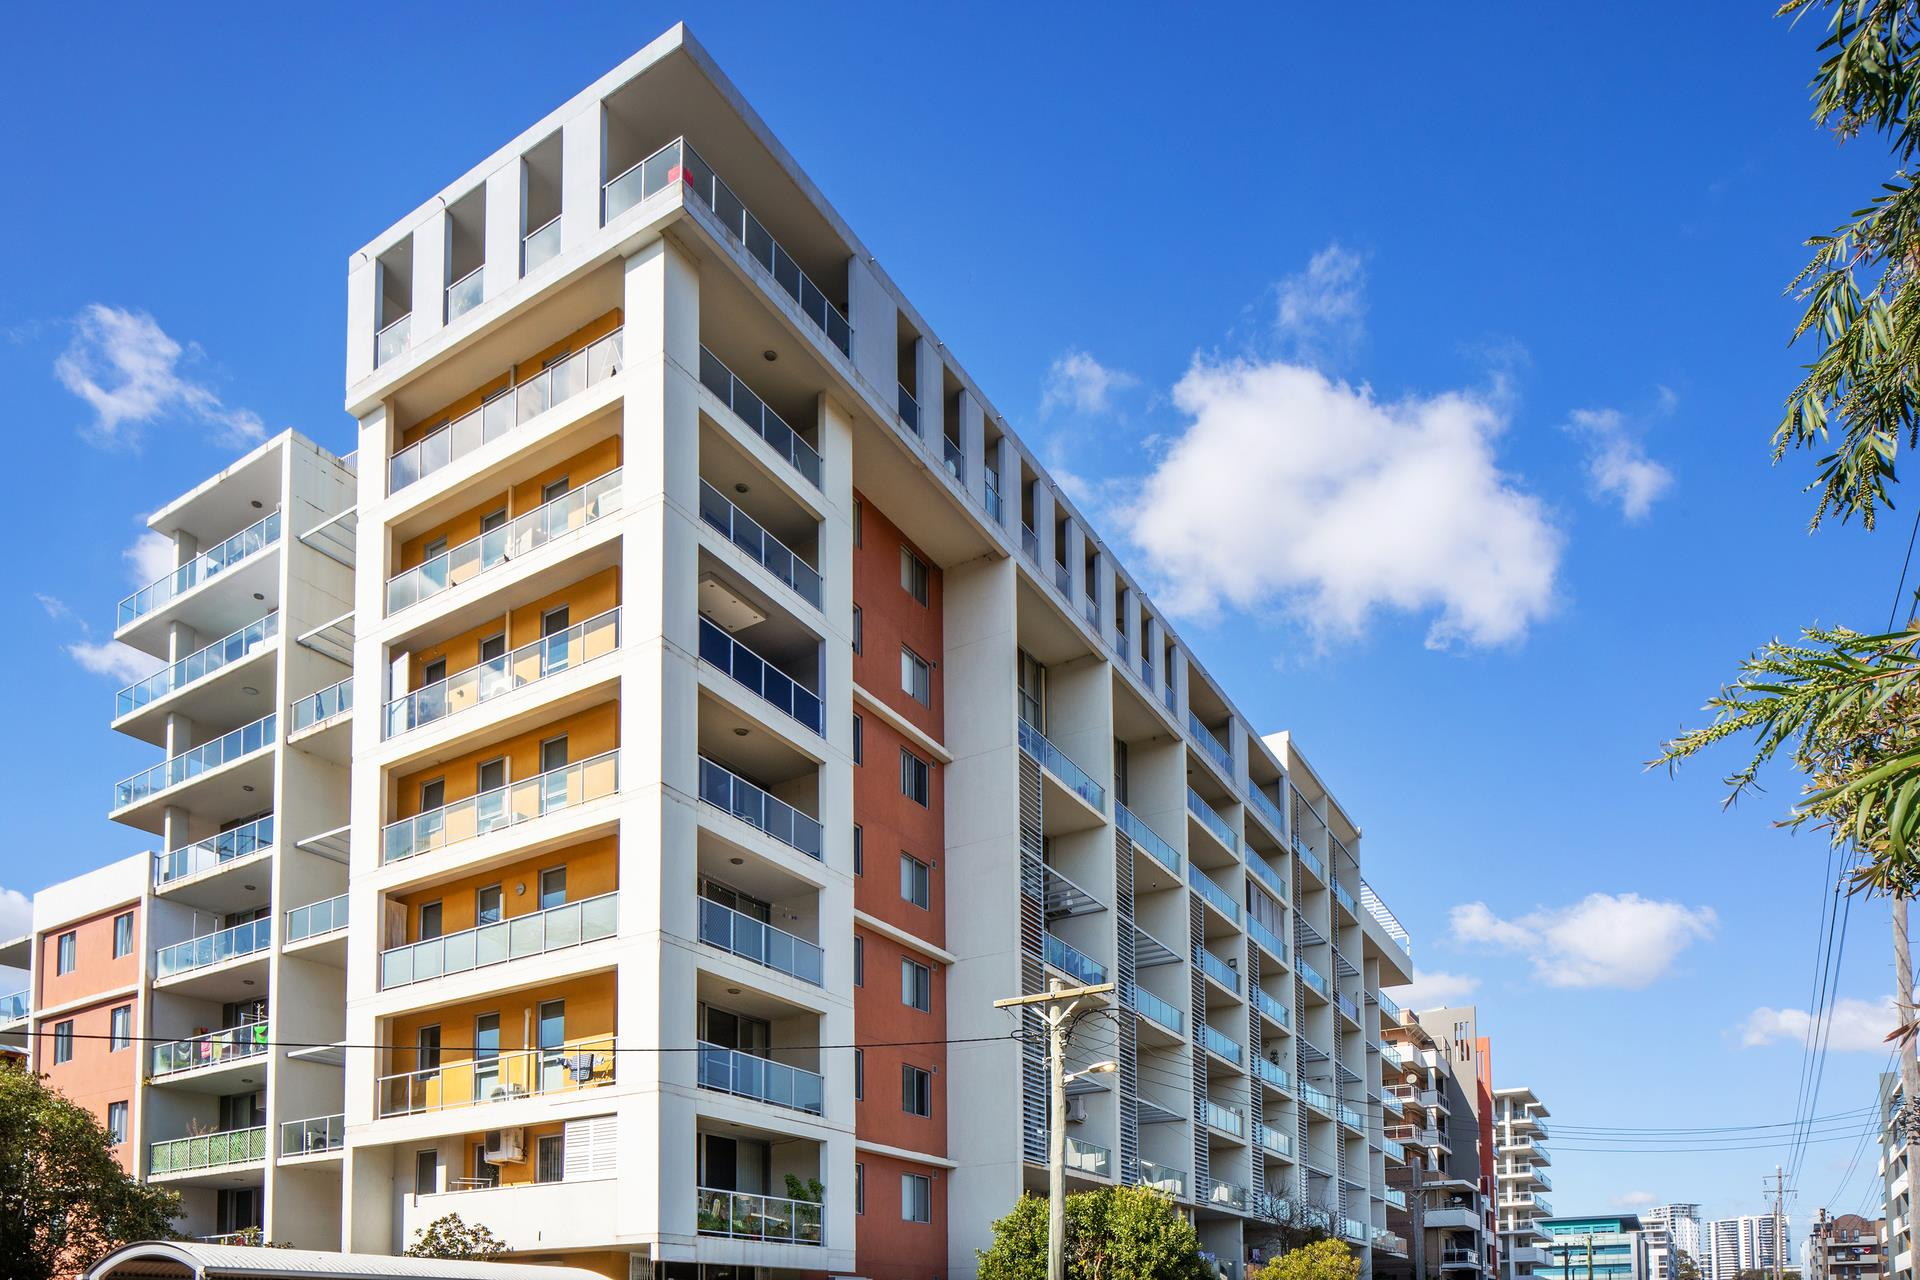 51/10-16 Castlereagh St, Liverpool, NSW 2170